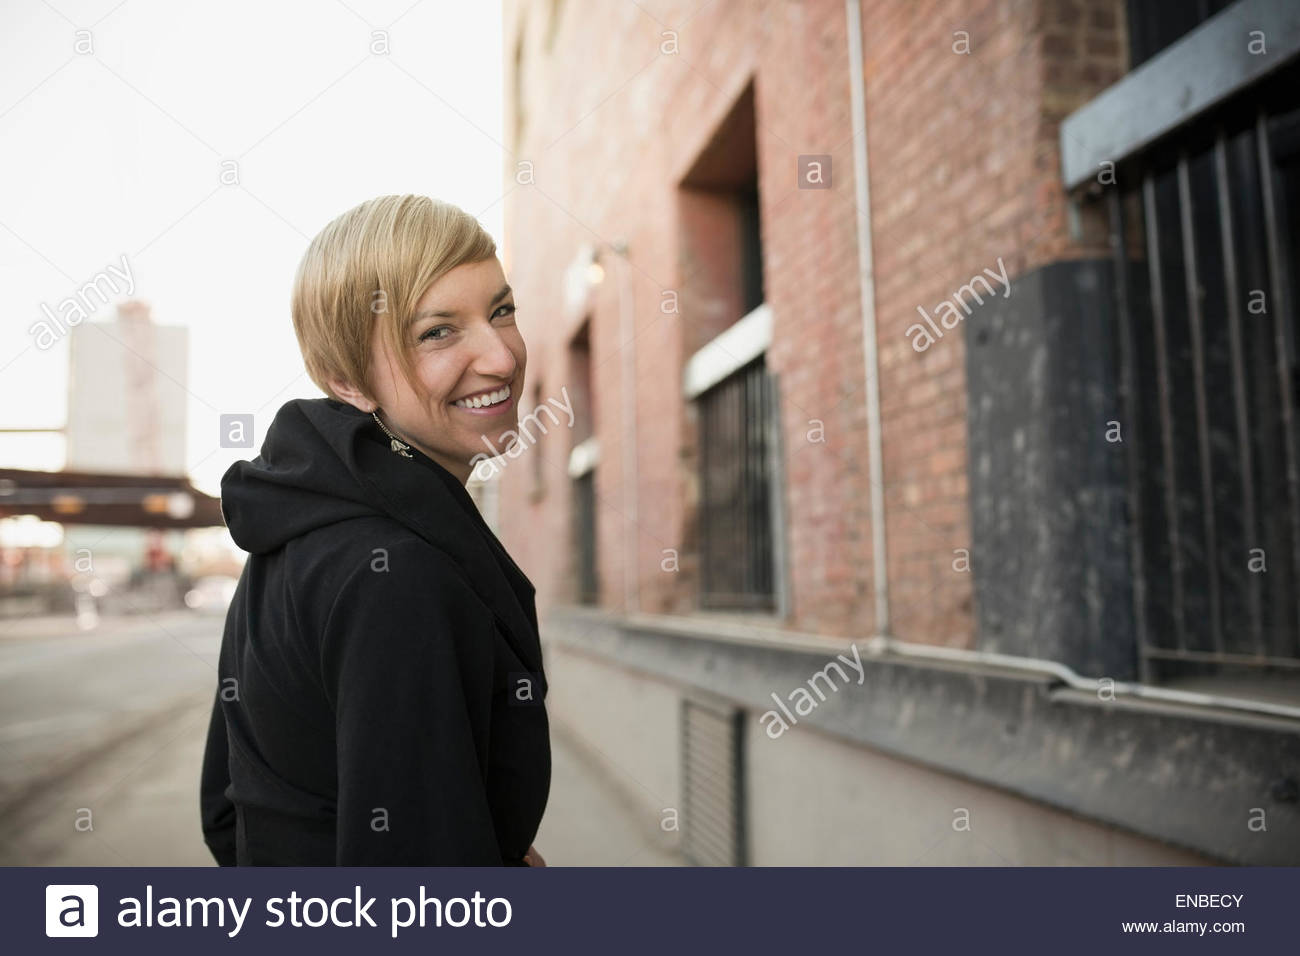 Portrait of smiling blonde woman turning on urban street - Stock Image